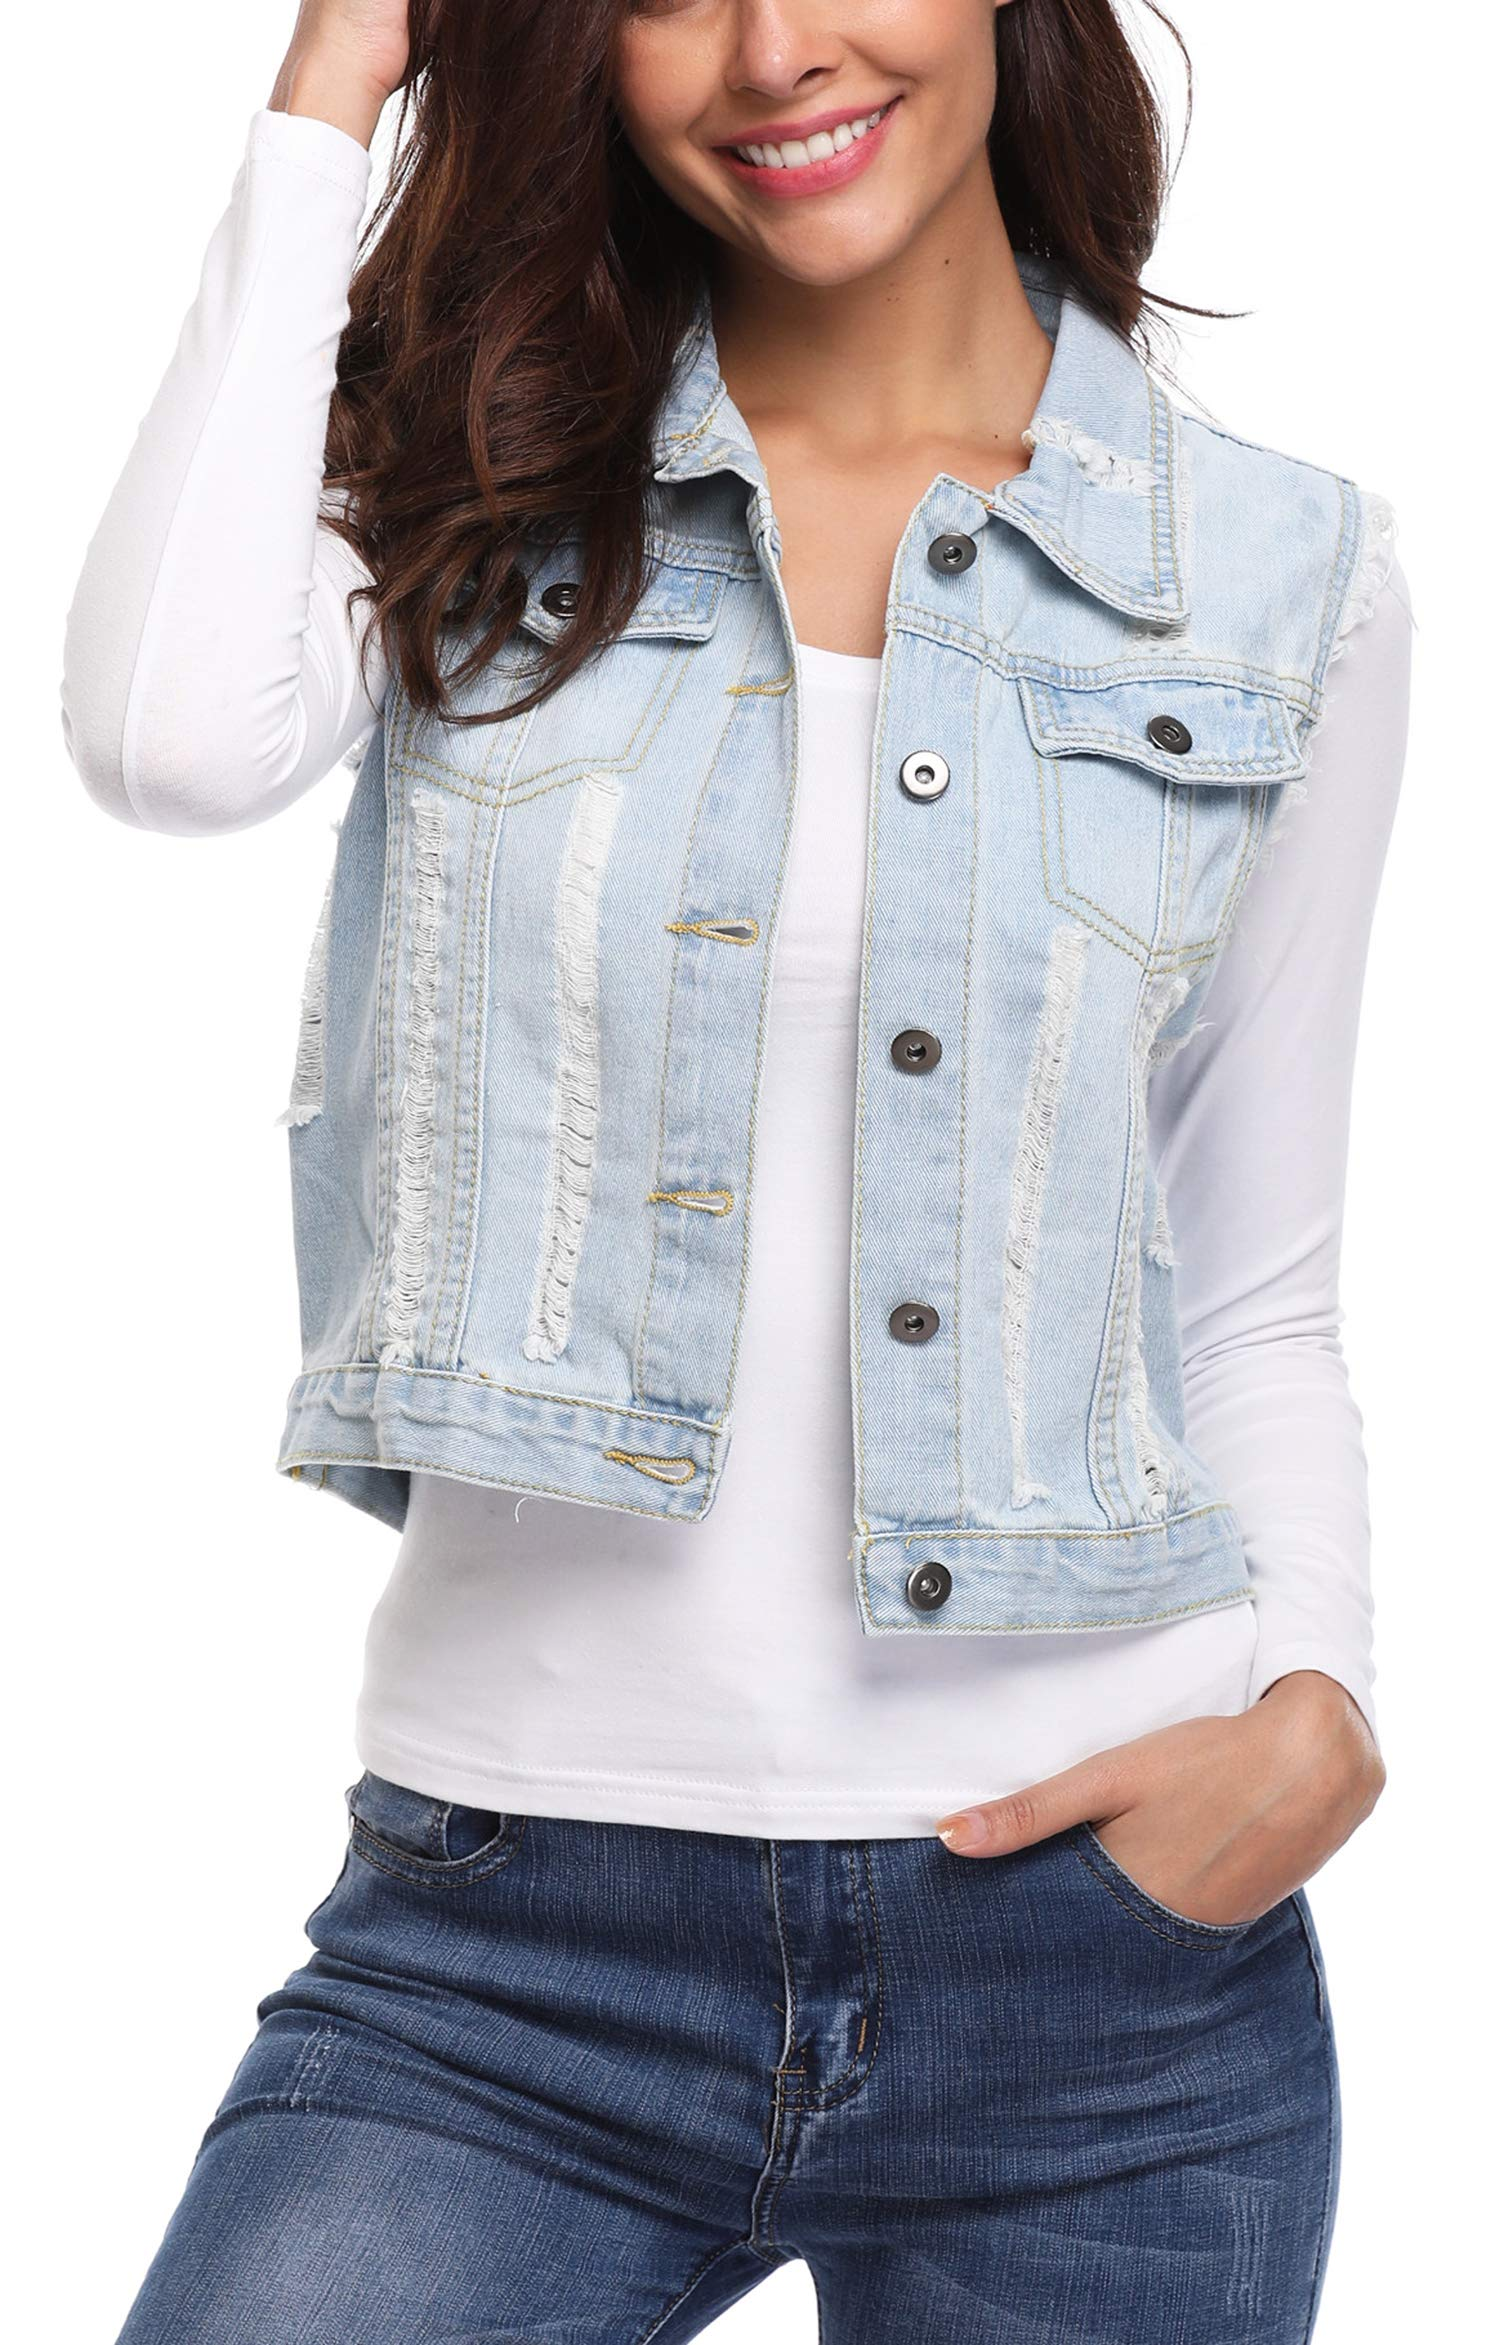 MISS MOLY Women's Sleeveless Denim Jacket Vest Turn Down Collar Buttoned Frayed Washed w 2 Chest Flap Pockets Light Blue XL by MISS MOLY (Image #3)